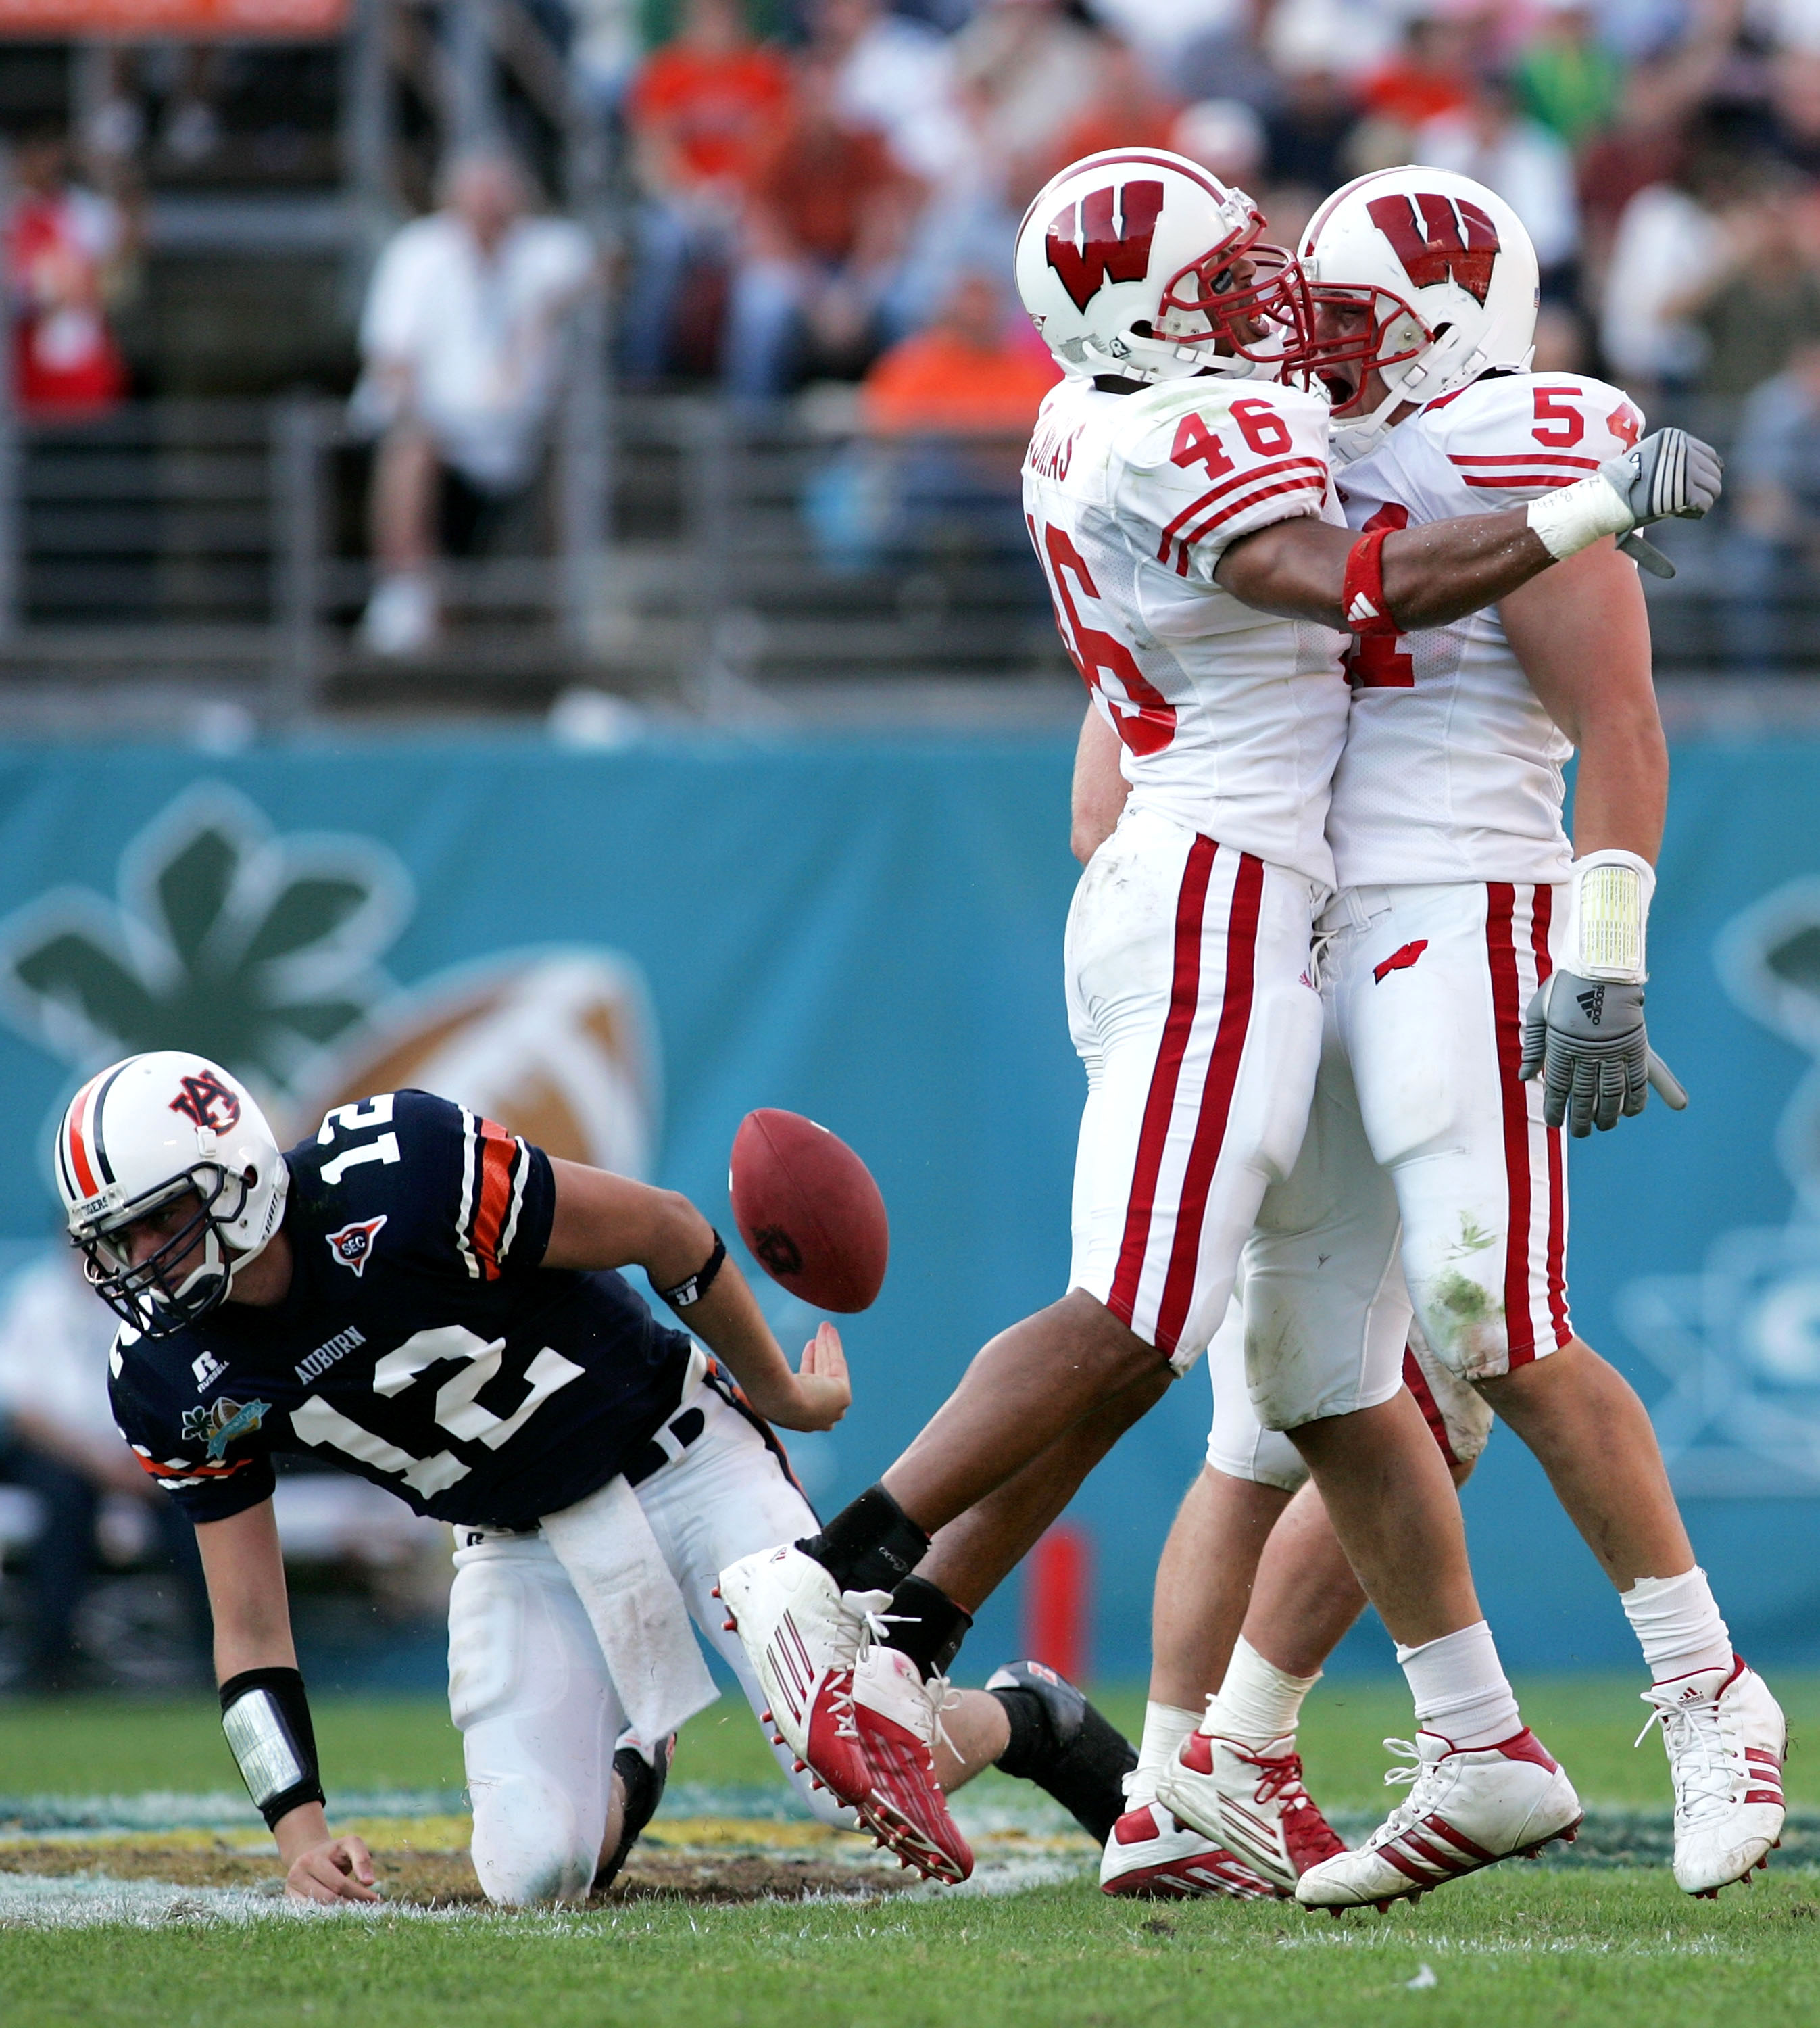 ORLANDO, FL - JANUARY 2:  Defenders Seth Frankenthal #48 and Mike Newkirk #54 of the Wisconsin Badgers celebrate after sacking quarterback Brandon Cox #12 of the Auburn Tigers during the Capital One Bowl on January 2, 2006 at the Florida Citrus Bowl in Or